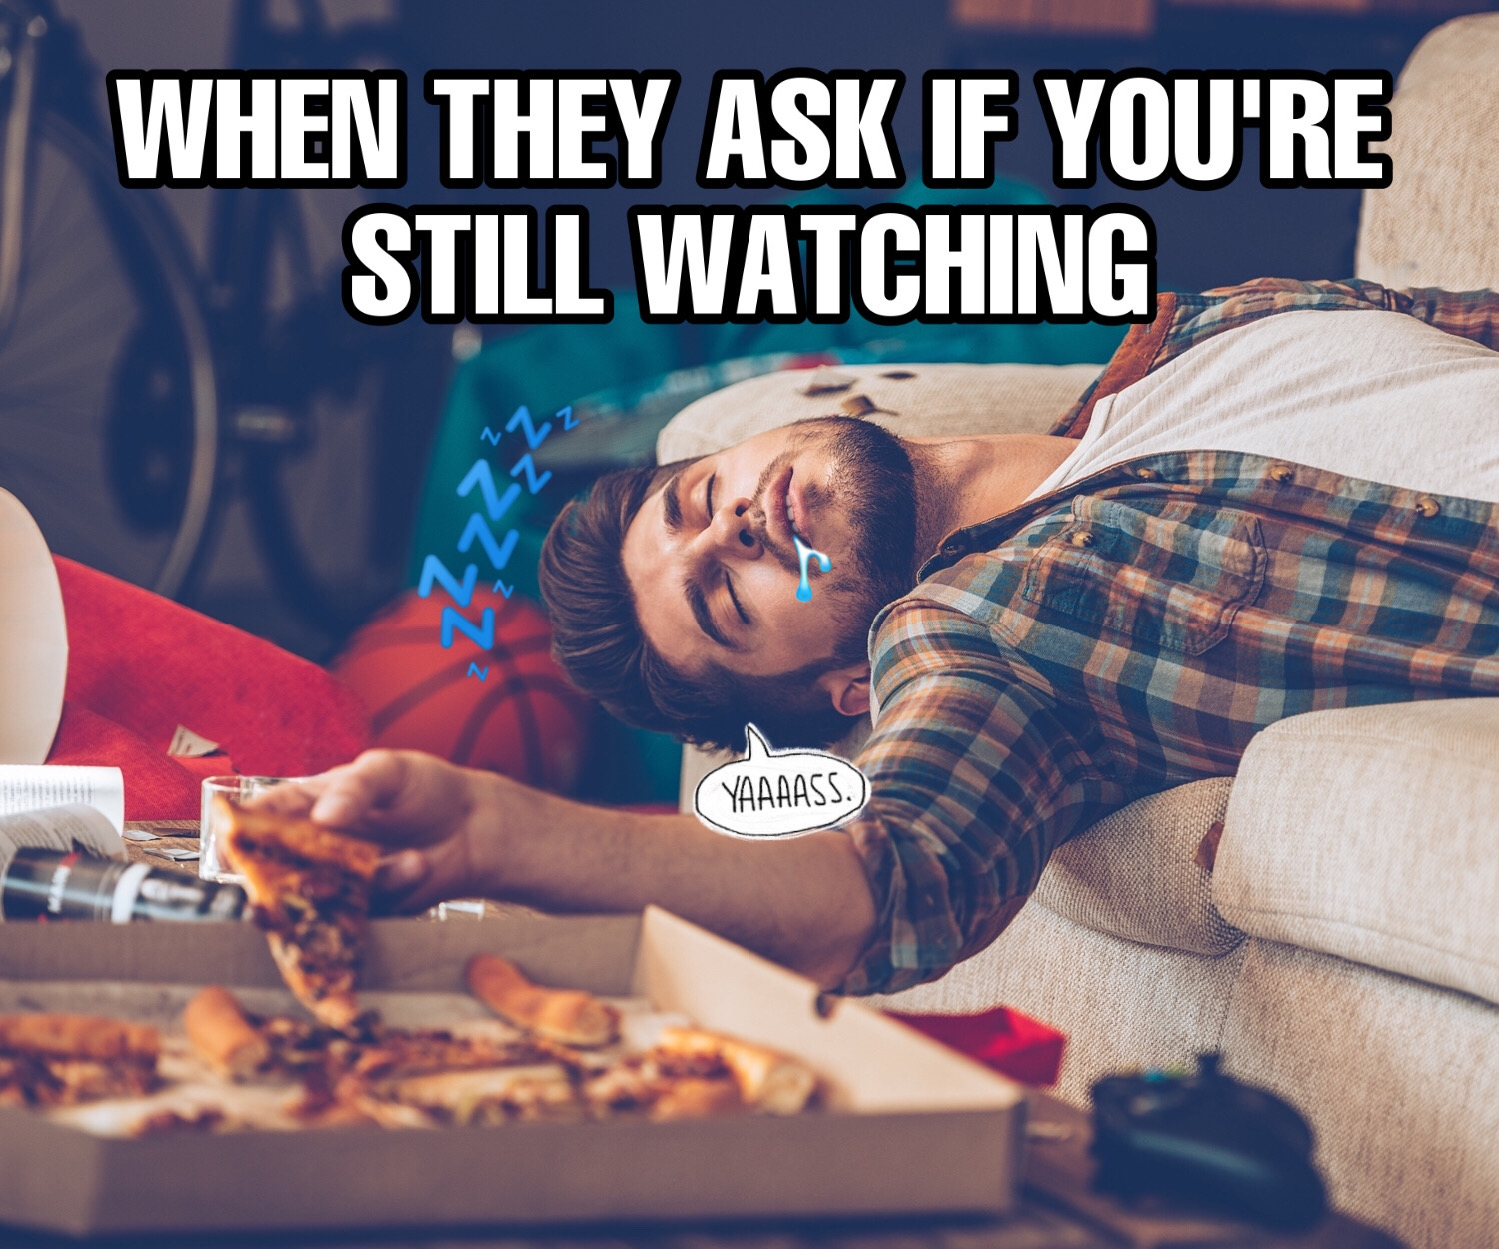 Meme of a guy asleep on the couch eating pizza made with meme maker tool